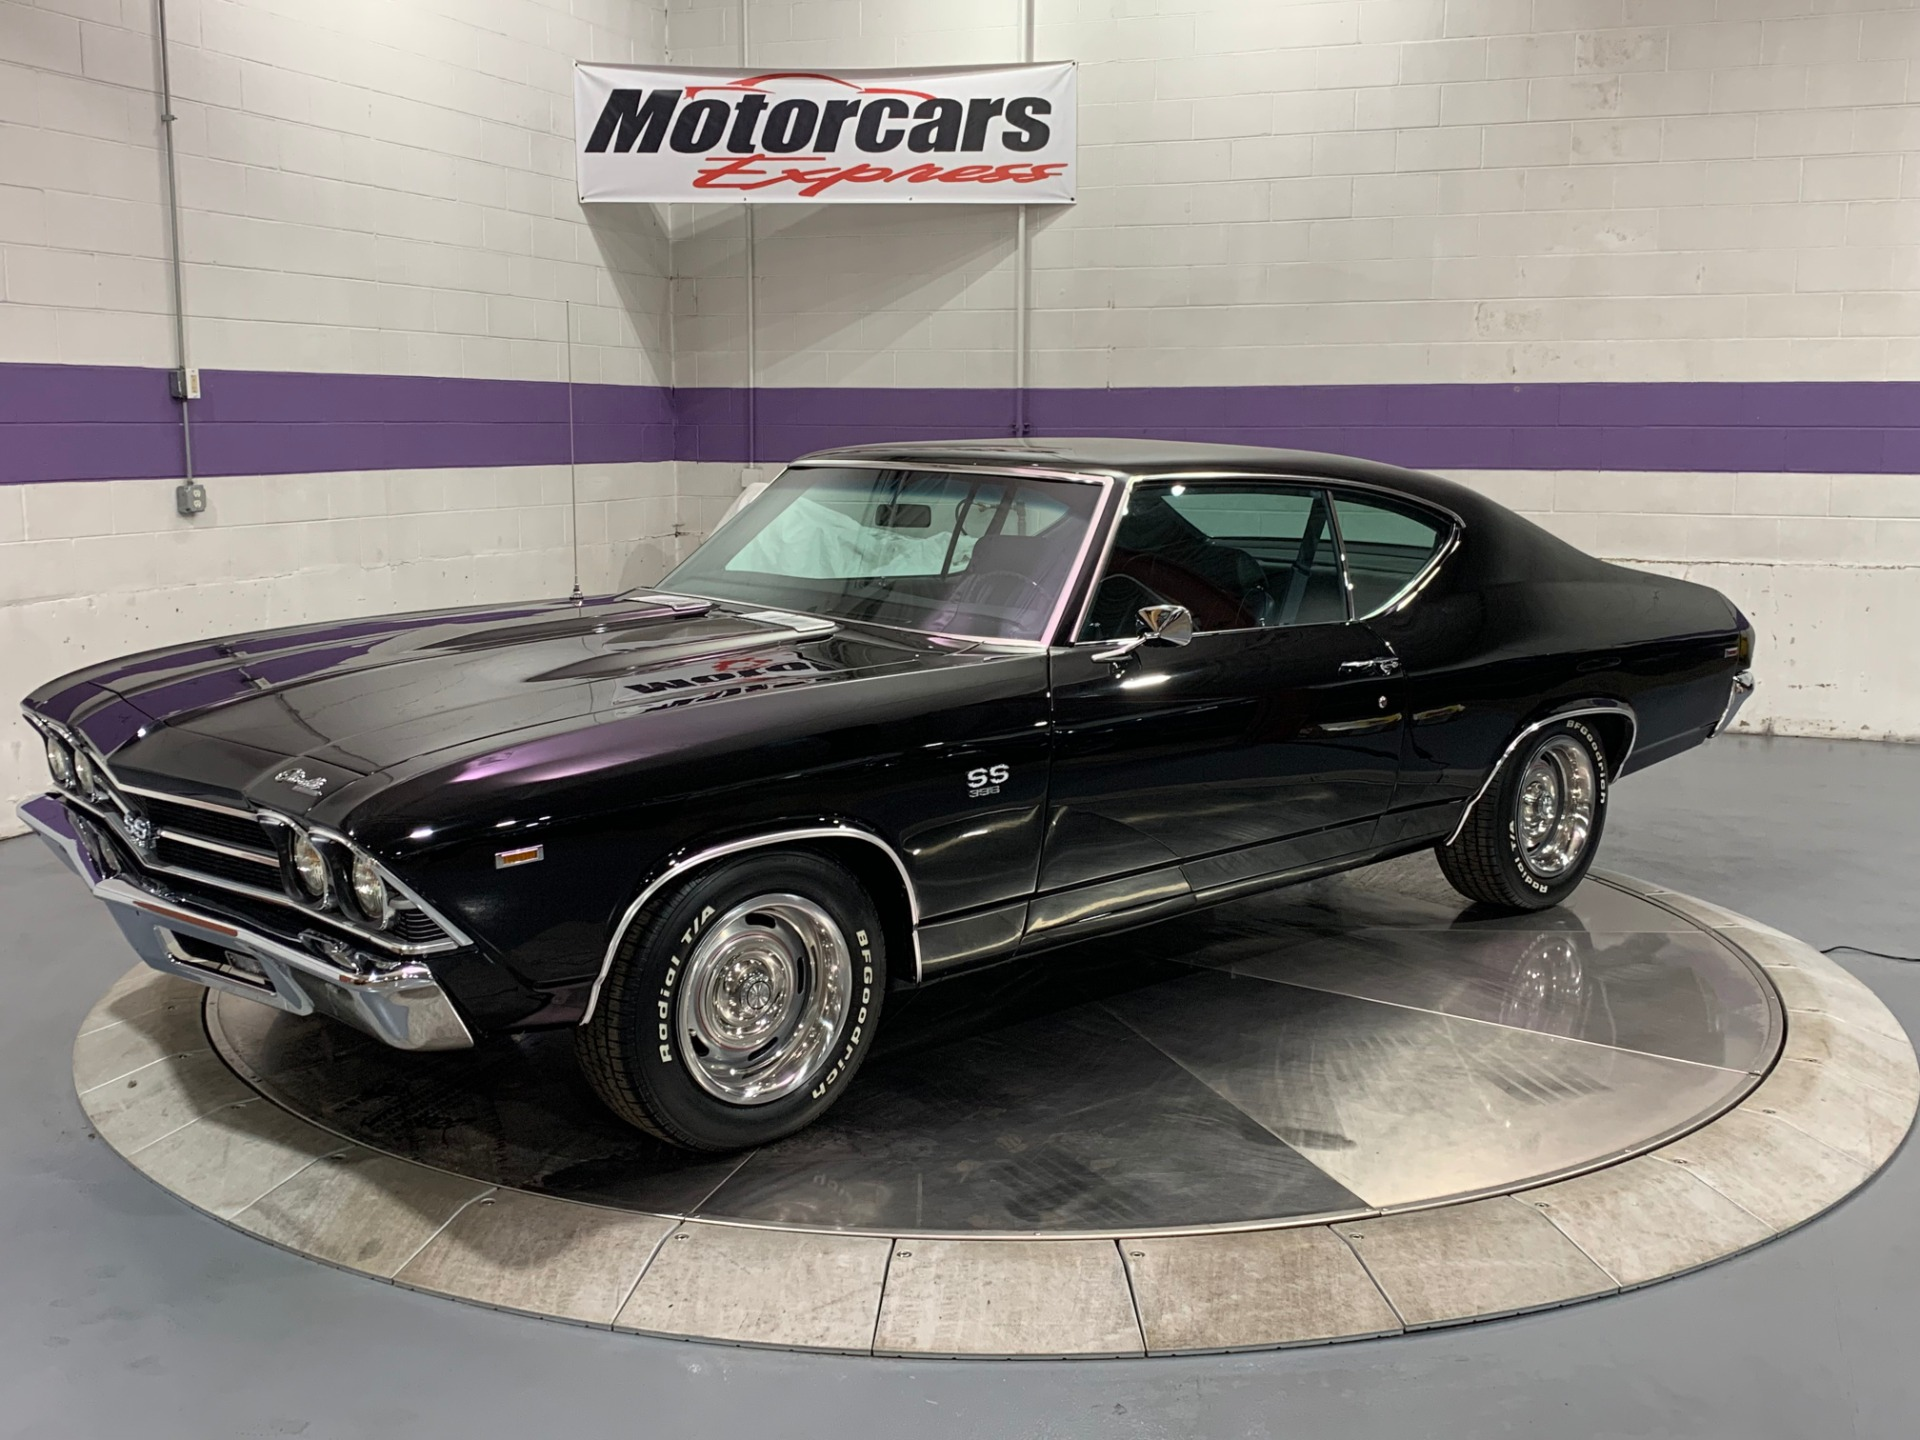 Chevrolet Dealer Near Me >> 1969 Chevrolet Chevelle SS 396 Stock # 24900 for sale near Alsip, IL | IL Chevrolet Dealer